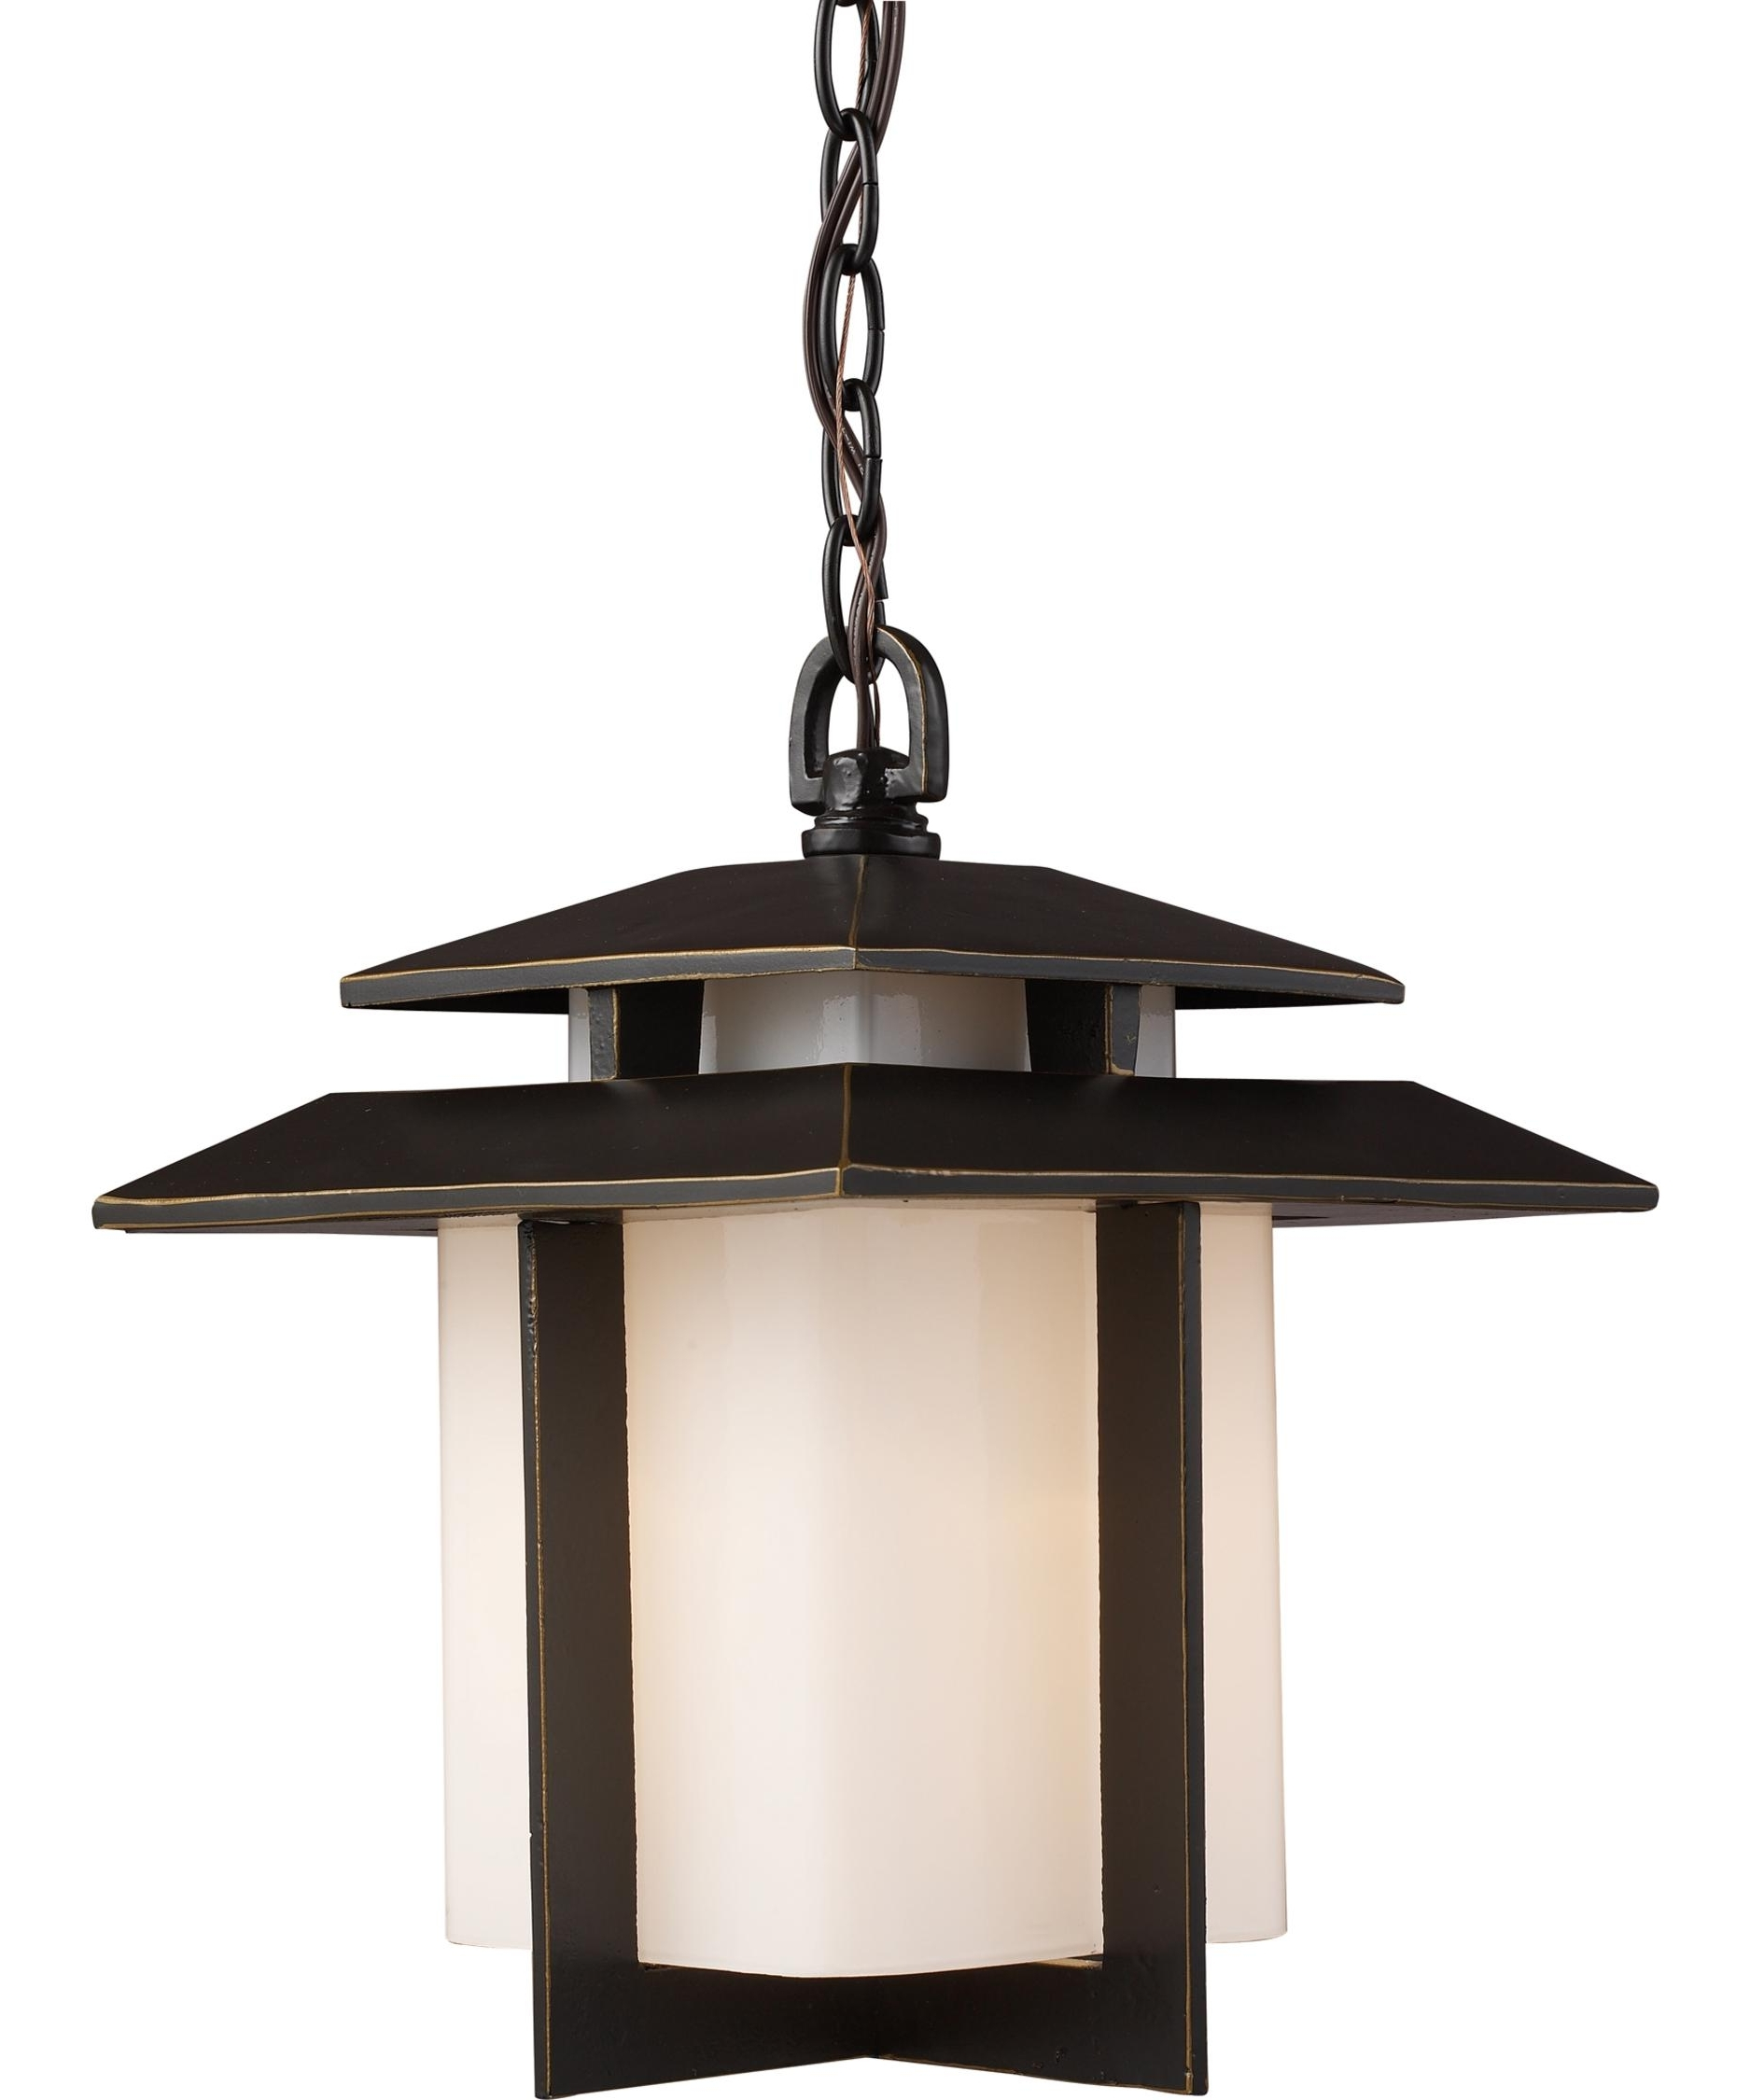 Well Known Outdoor Japanese Lanterns For Sale Throughout Elk Lighting 42172 1 Kanso 10 Inch Wide 1 Light Outdoor Hanging (View 13 of 20)